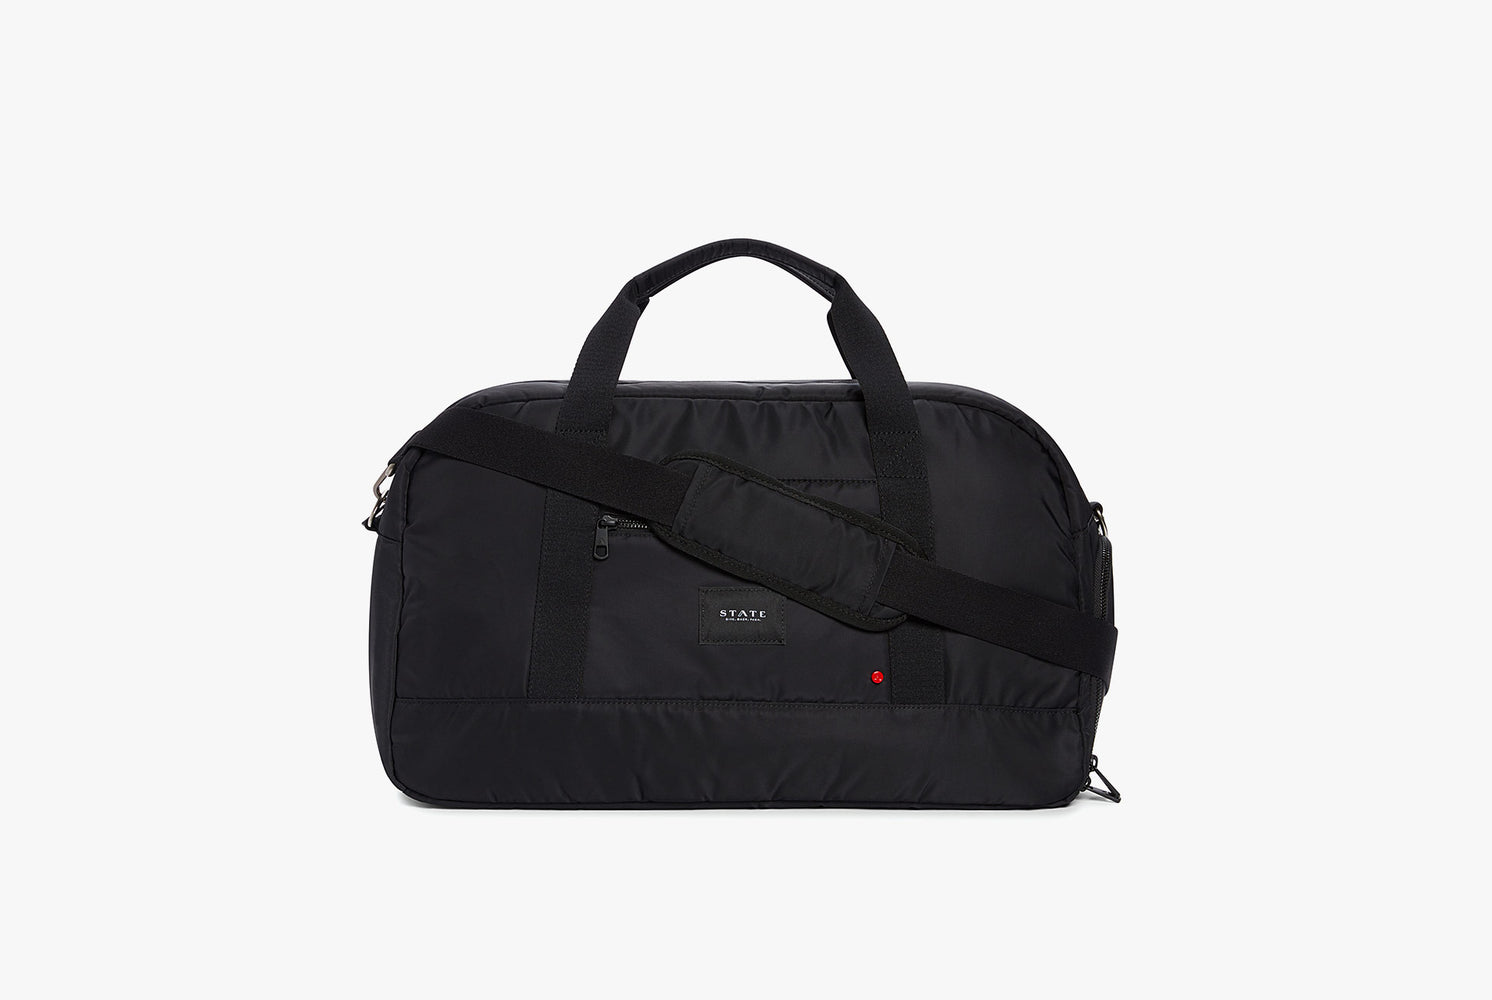 STATE Franklin Nylon Duffel Bag